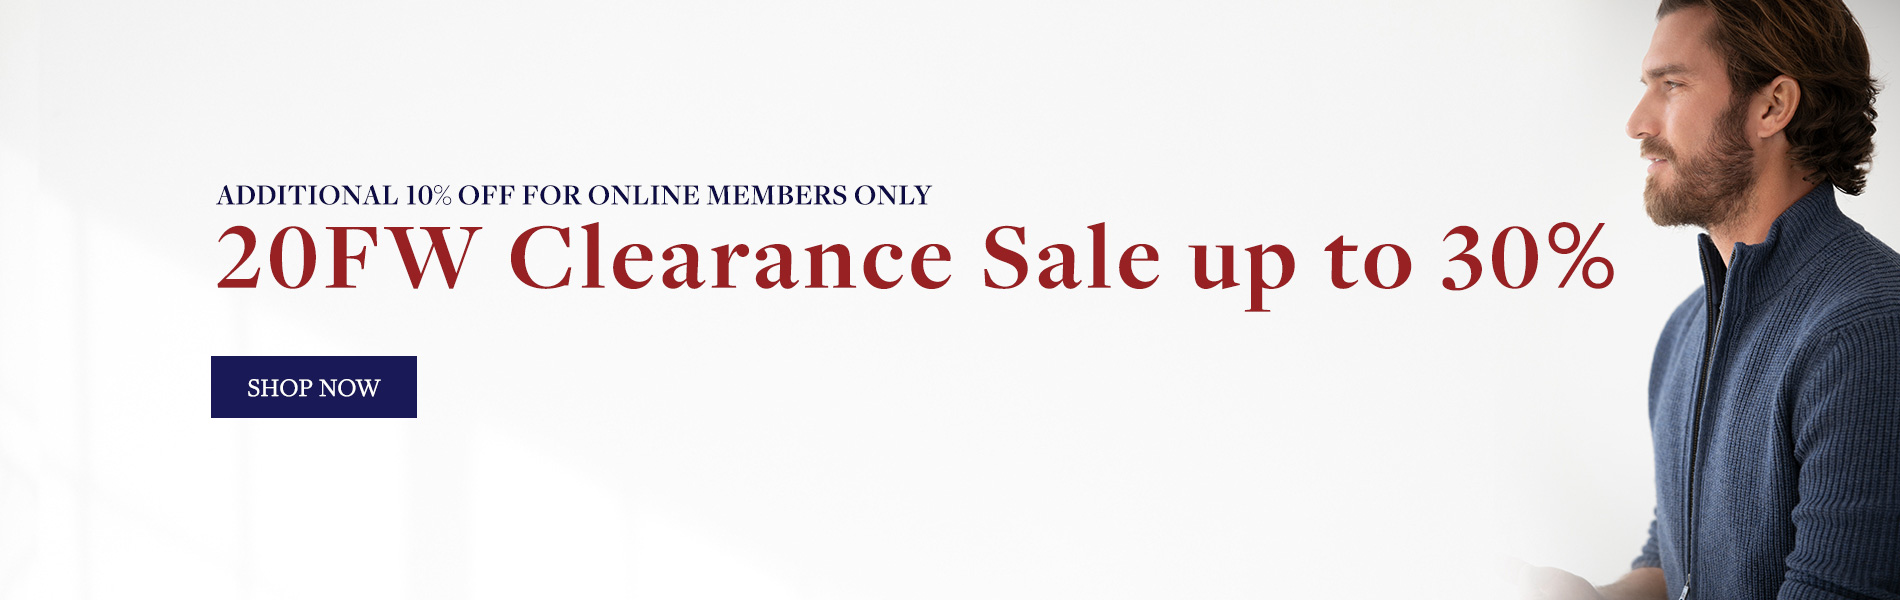 20 FW Clearance Sale